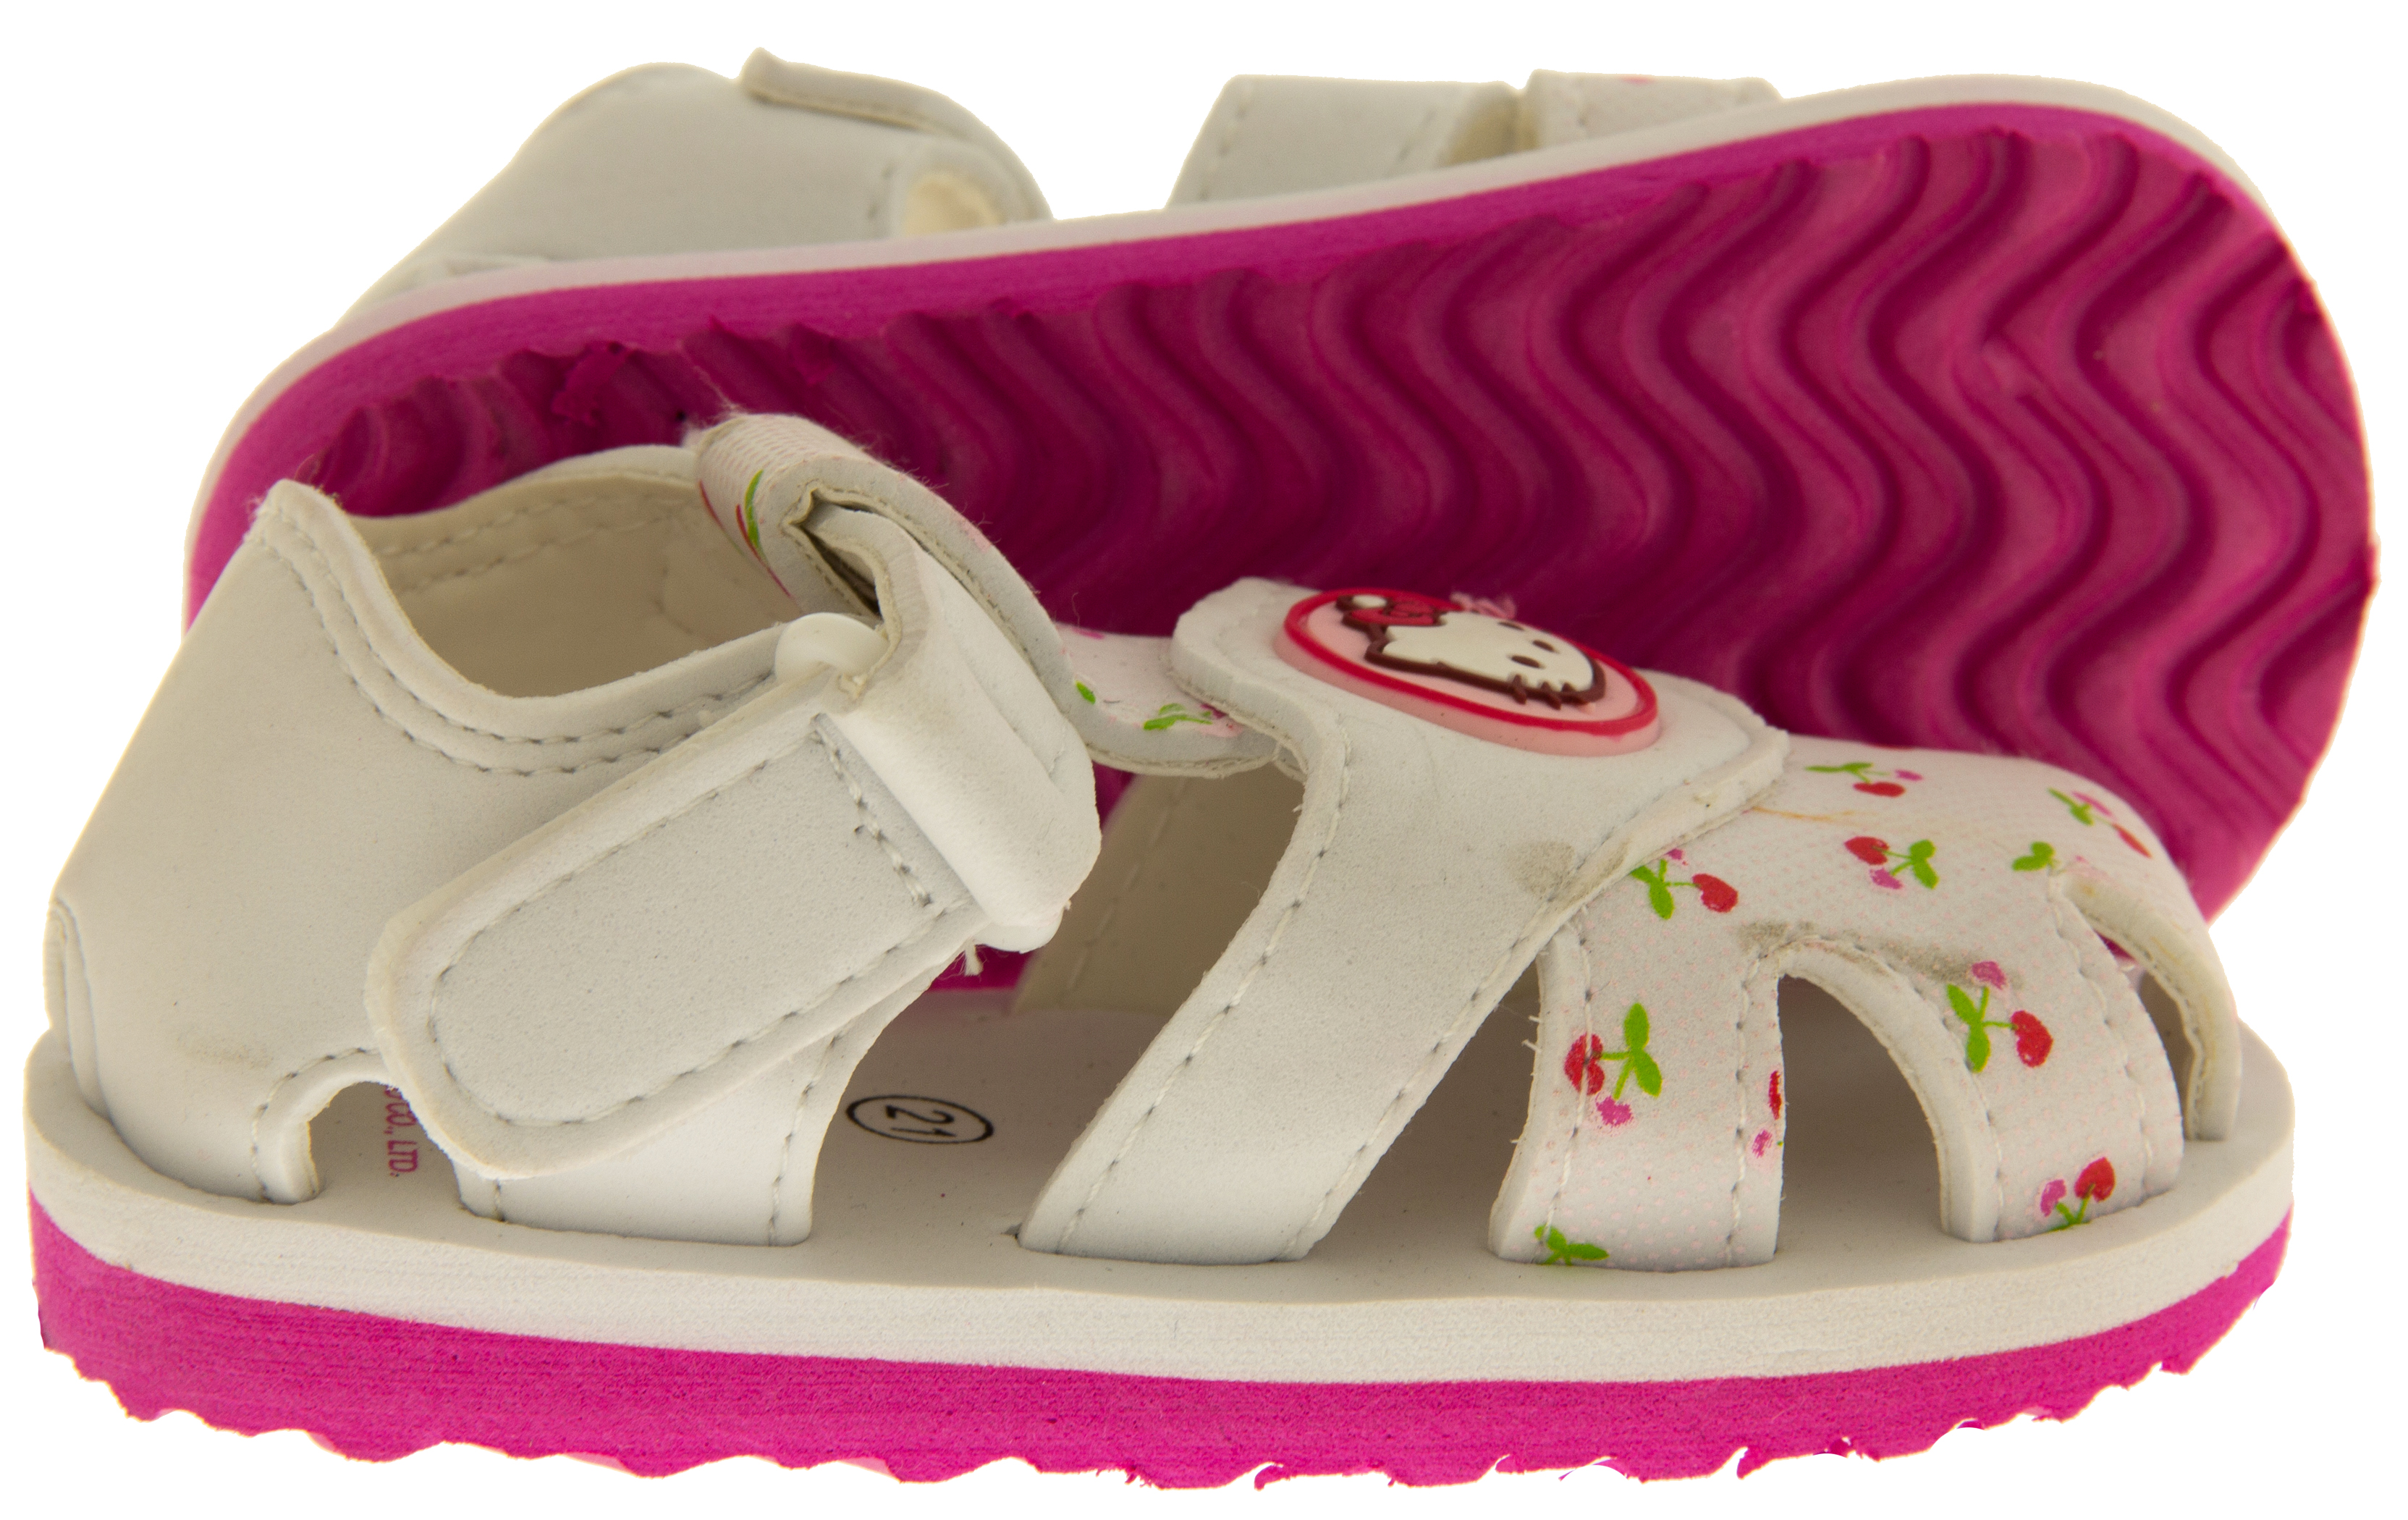 Baby Shoes - Toddler Shoes - Macy's